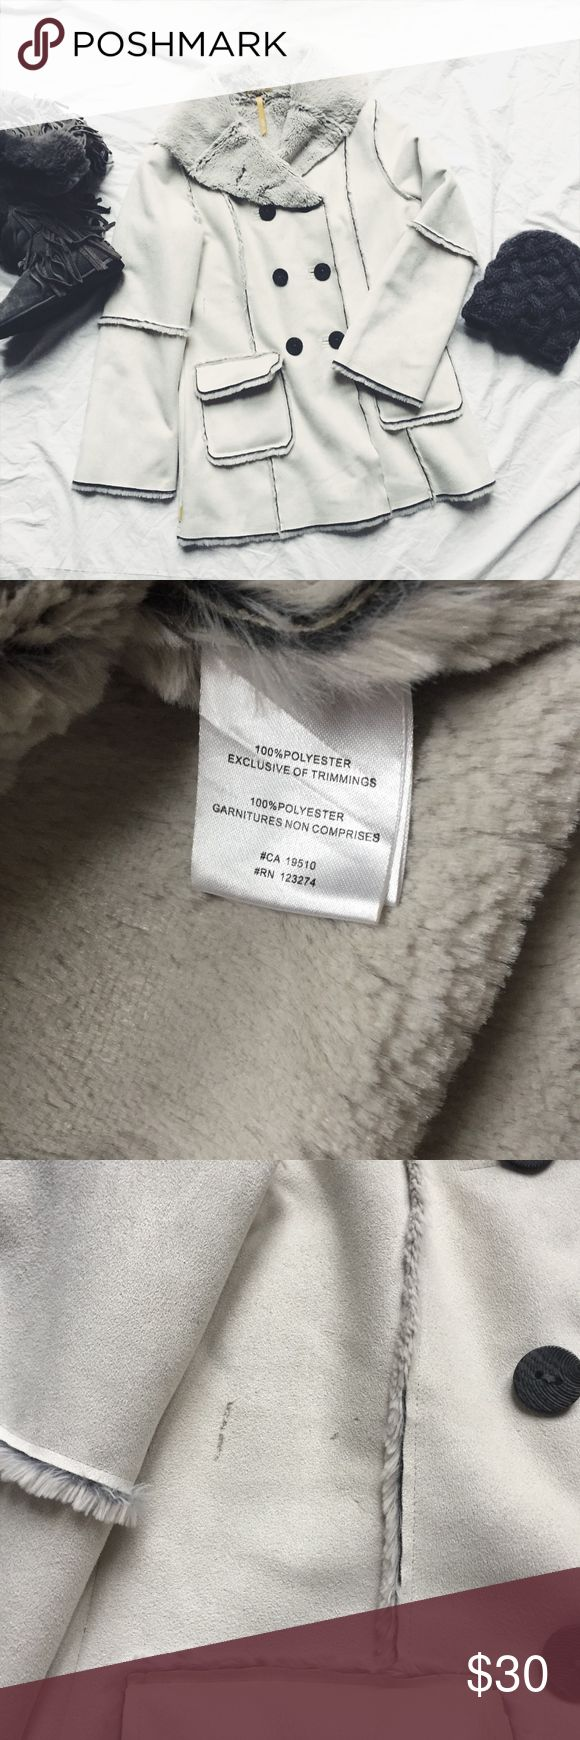 Lole faux suede/shearling winter white coat sz L Pre-loved Lole gray / winter white coat in good used condition.  Size L (10 - 12).  Machine washable.  Very warm, at least for winter in the south!  SUPER SOFT on the inside.  There is a spot that won't come out as shown in photos and I have priced it accordingly (this was over $200 new.)  Beautiful coat! Lole Jackets & Coats